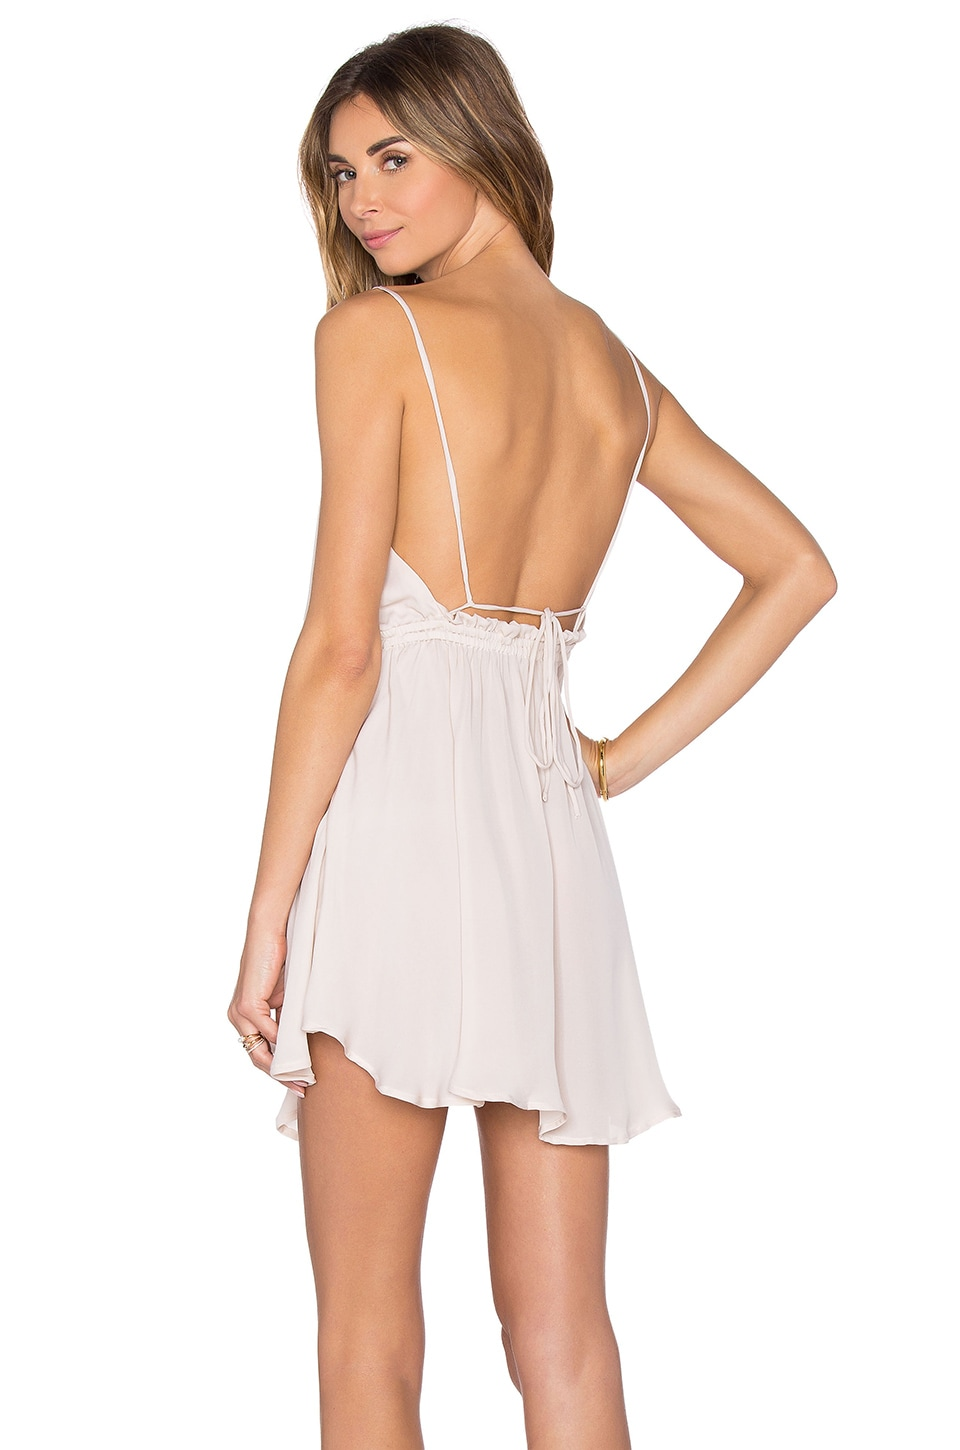 Tahani Mini Dress